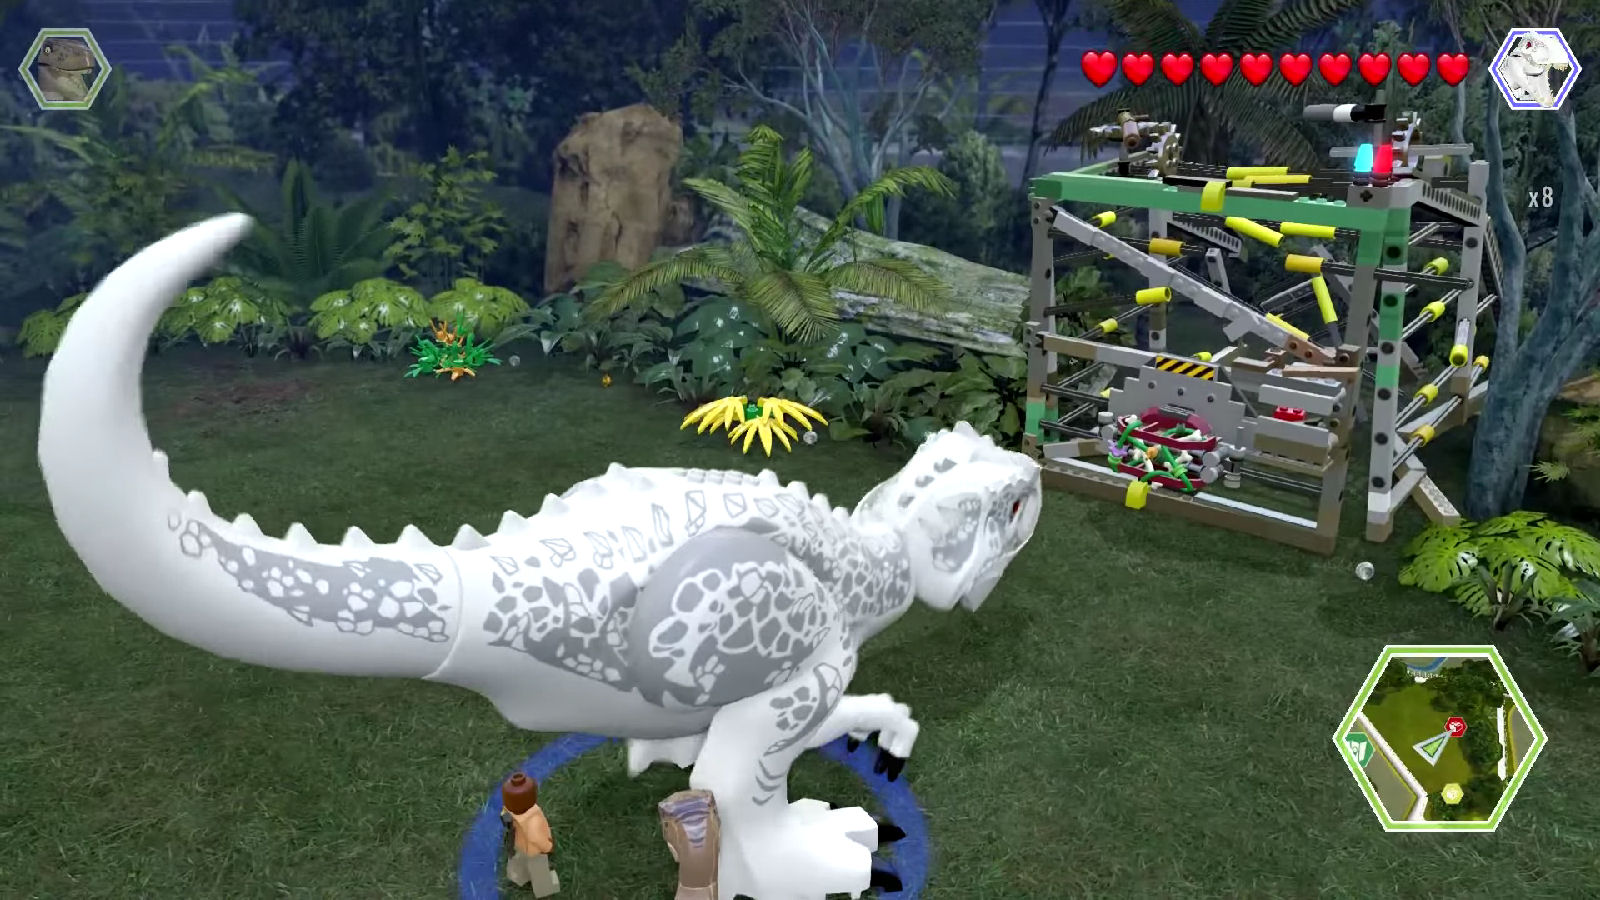 Lego jurassic world red brick 8 red brick detector location gumiabroncs Images